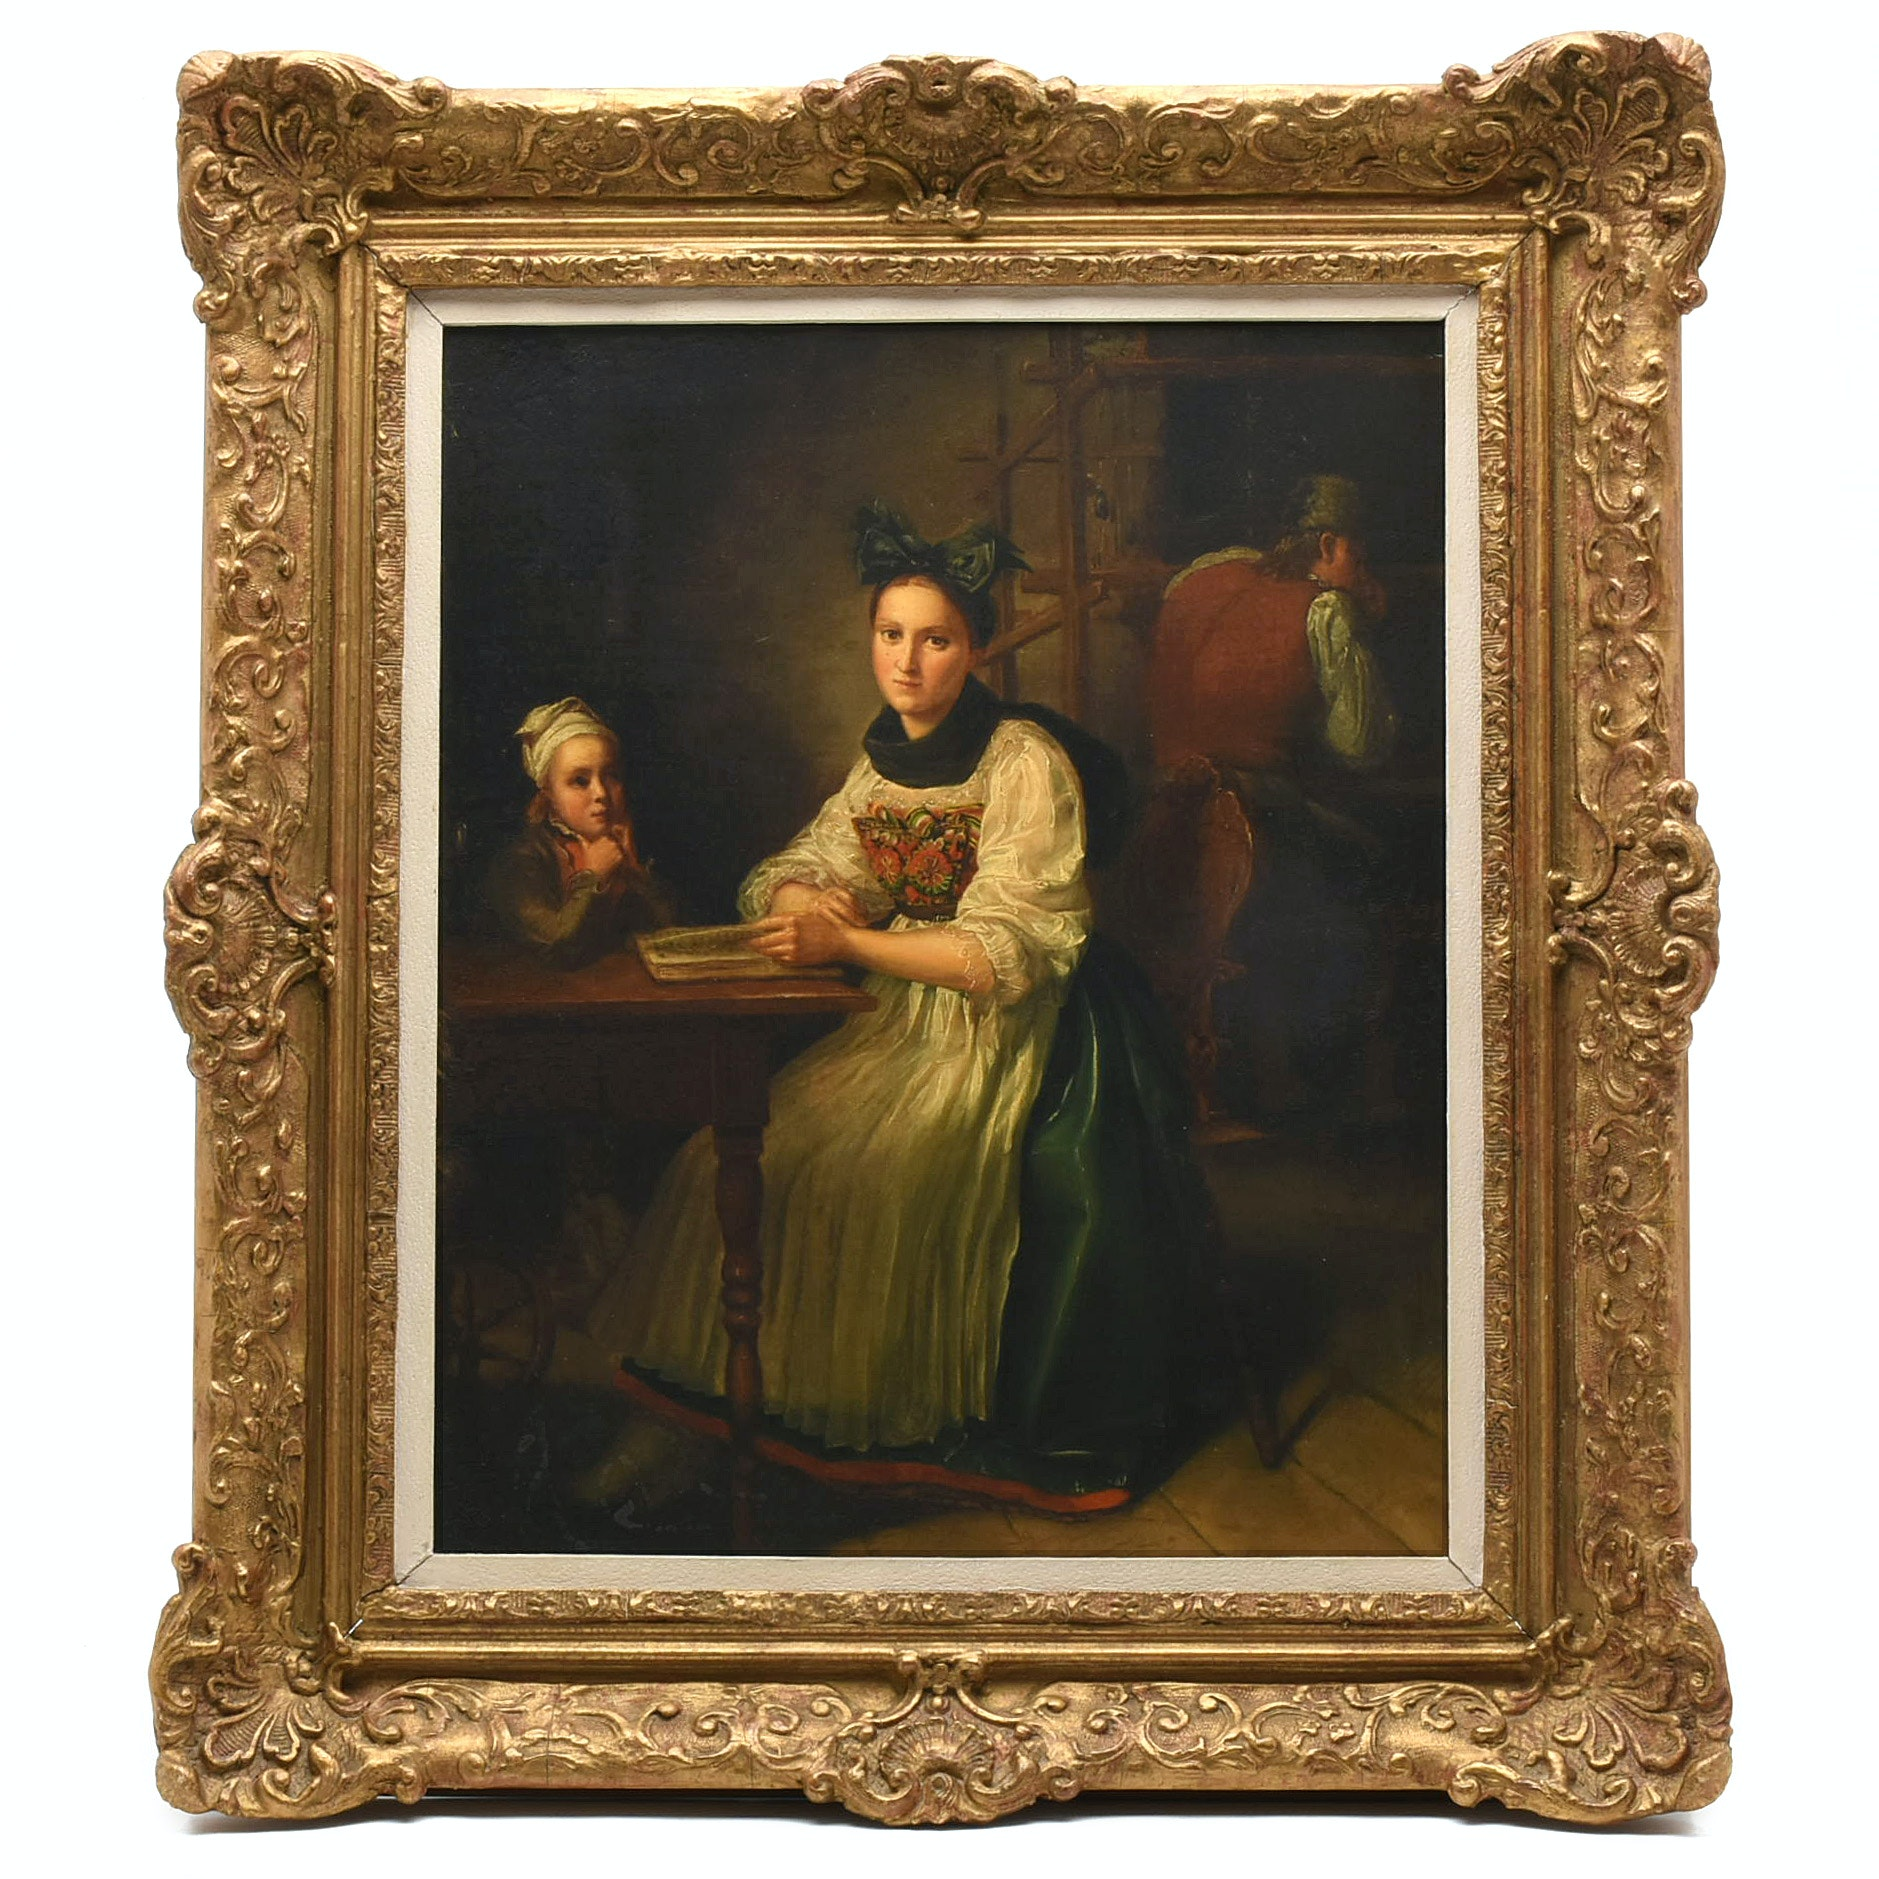 19th Century Dutch School Oil Painting on Canvas